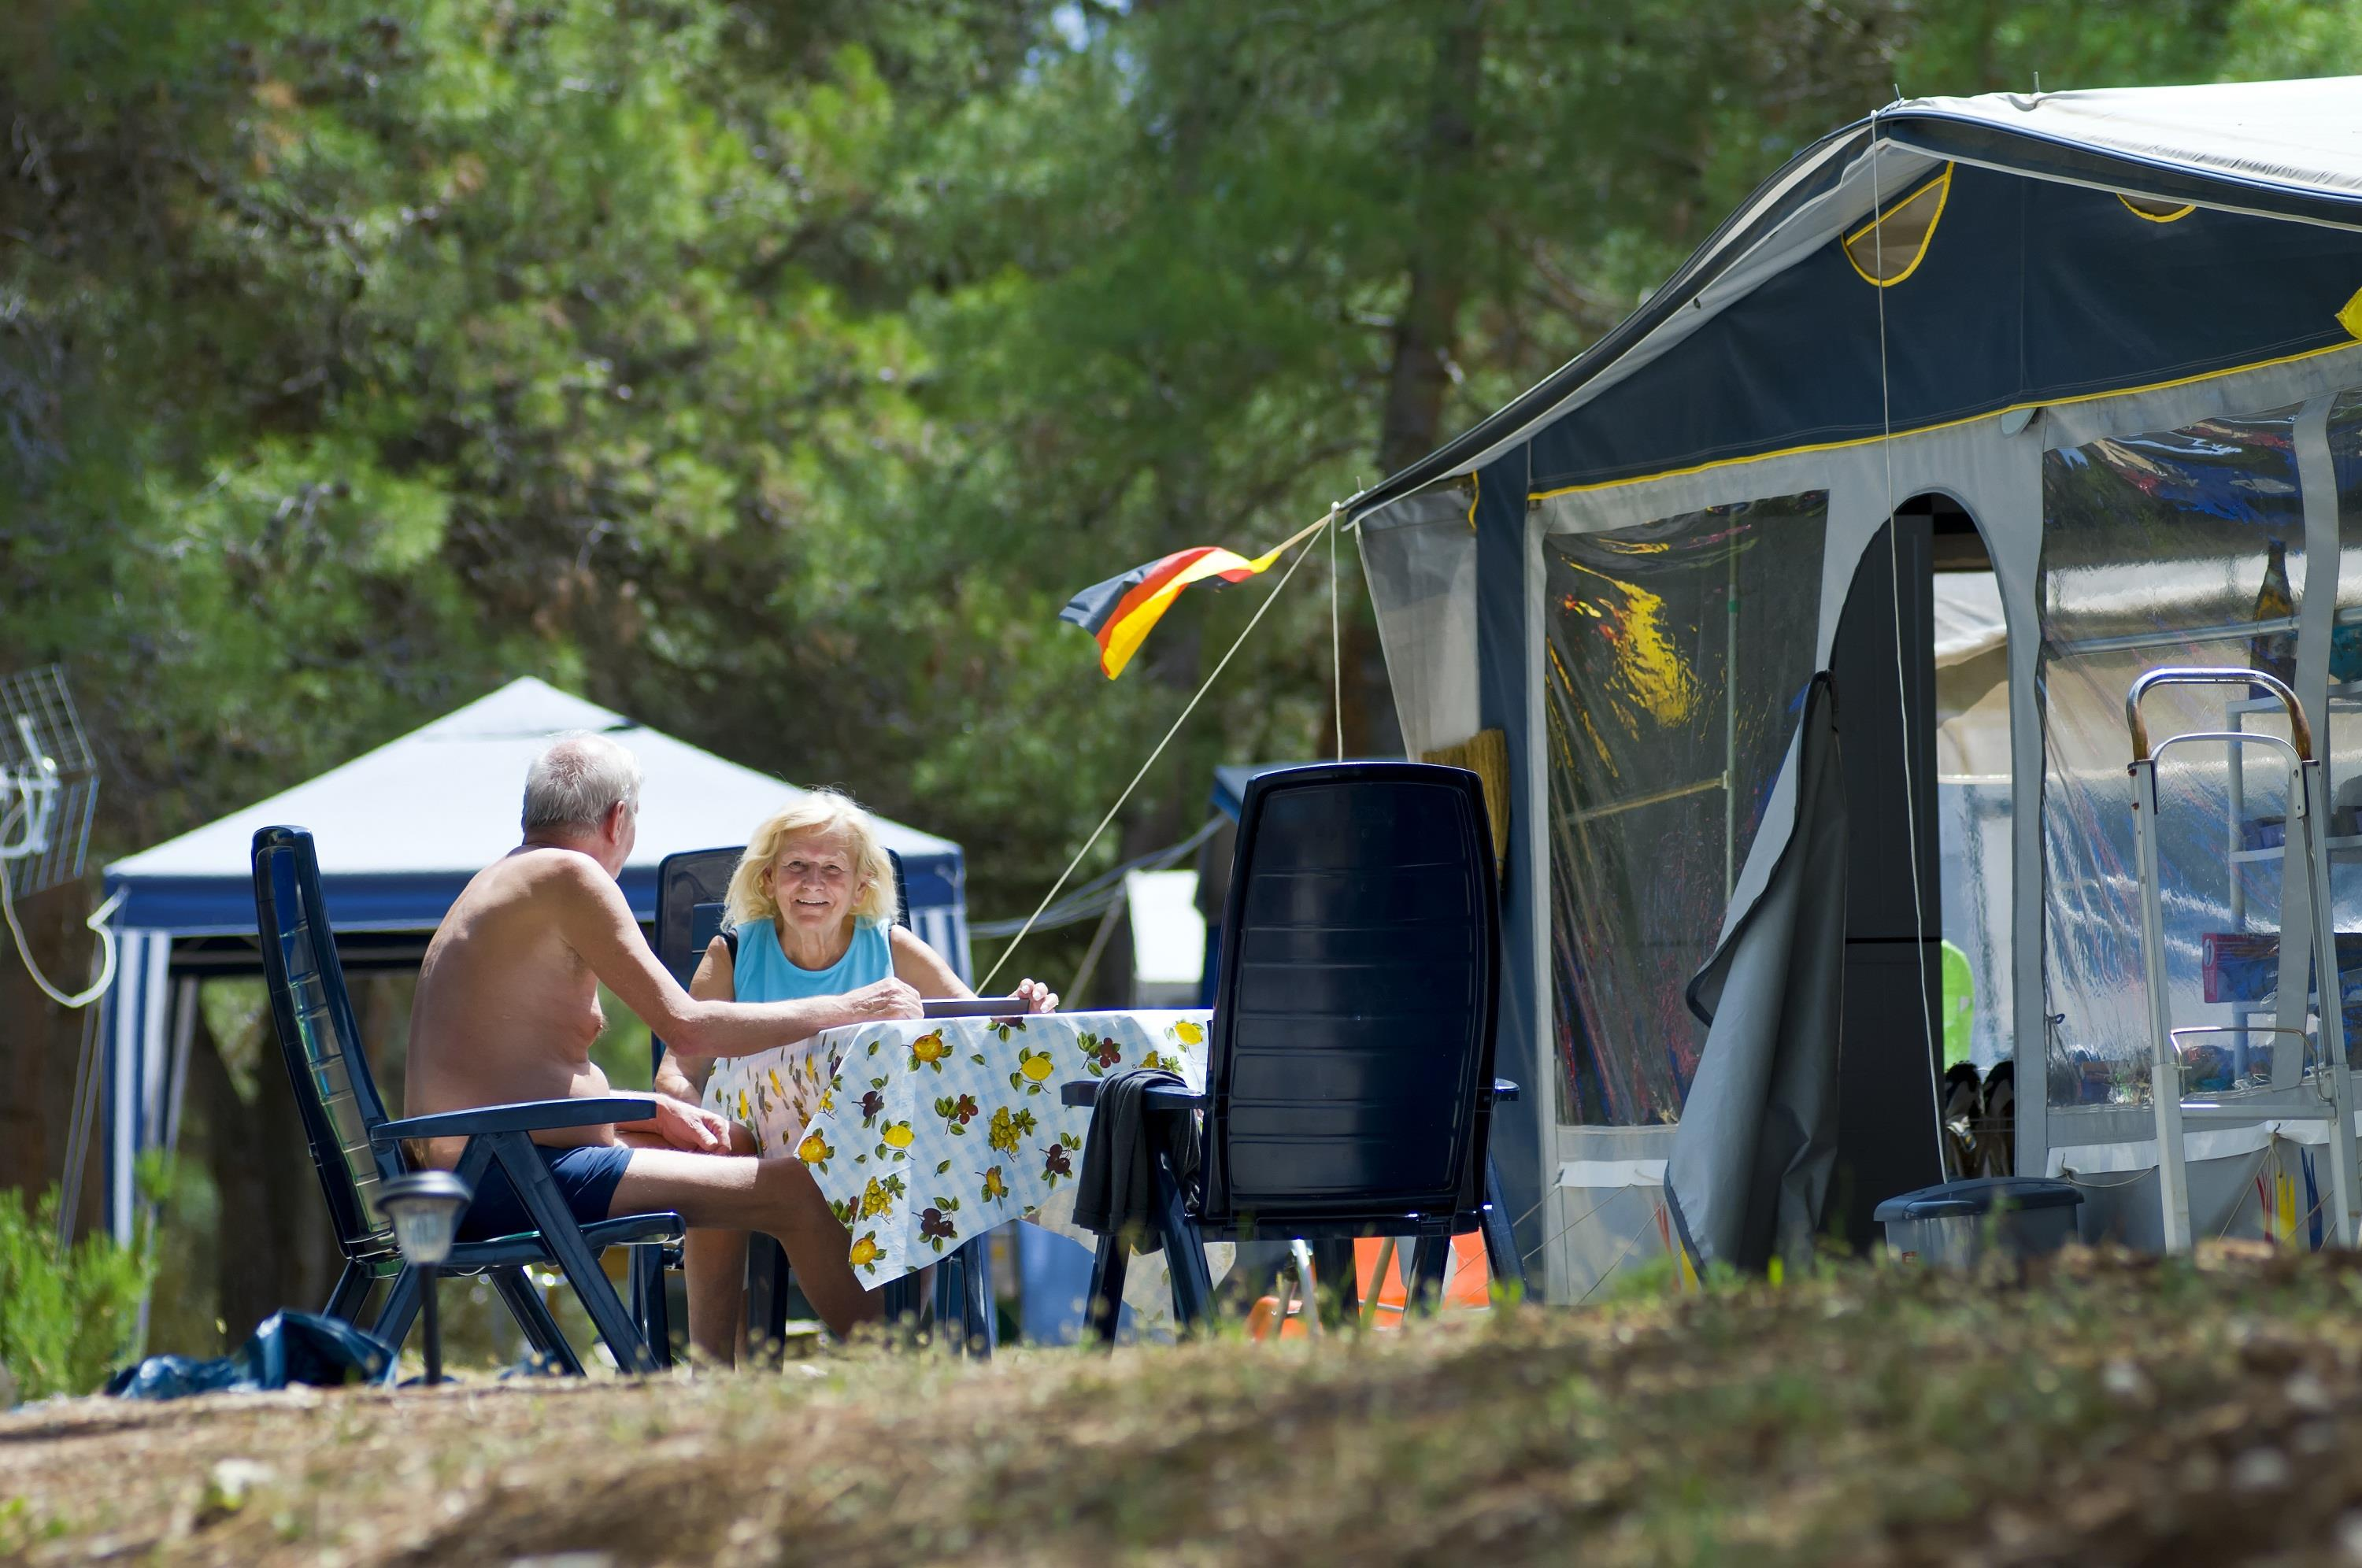 Emplacement - Emplacement Comfort - Brioni Sunny Camping